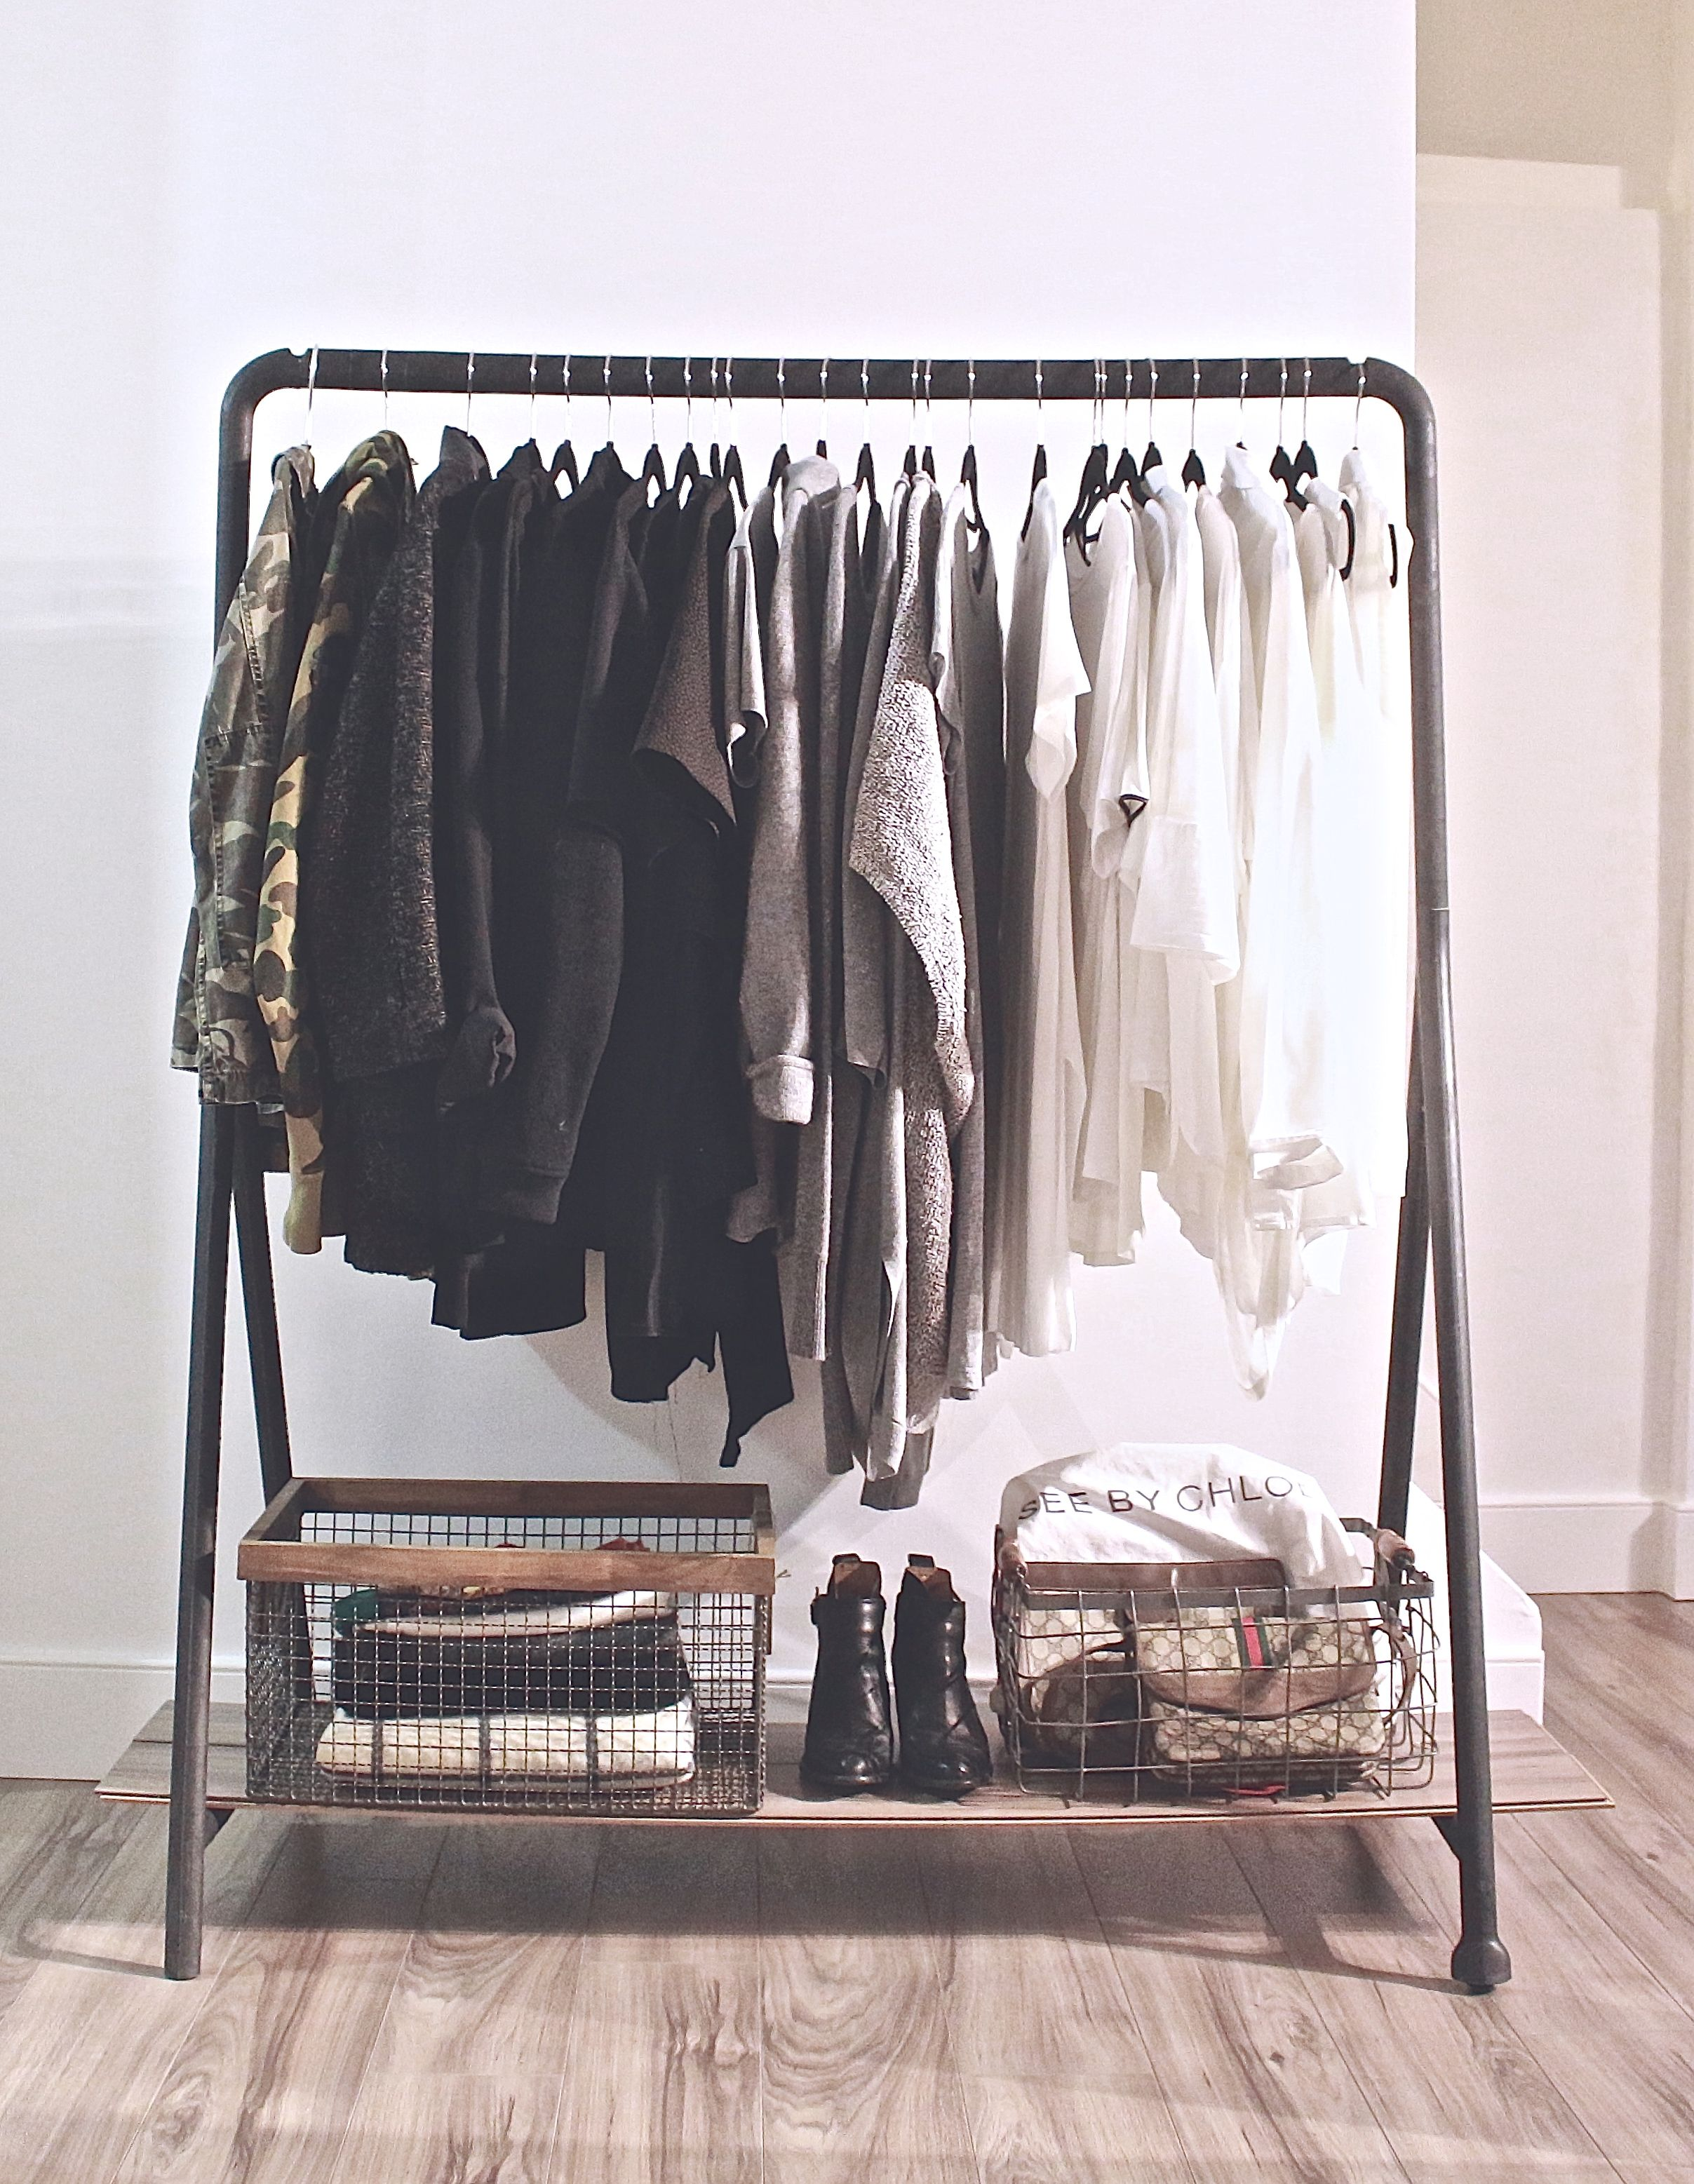 Clothing Rack //wire baskets #homegoods #homesense // ankle boots ...